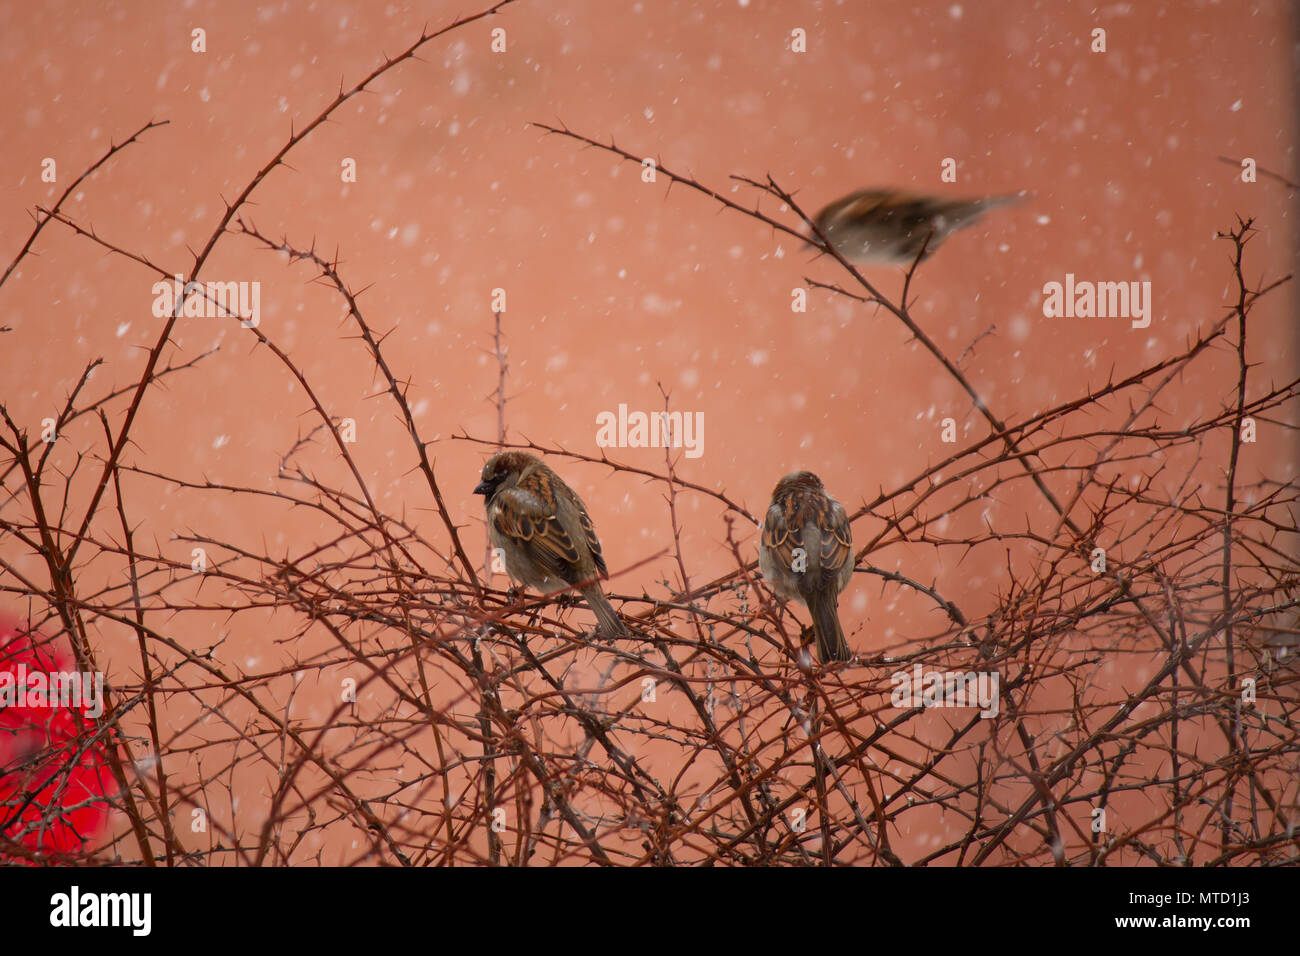 Three house sparrows (Passer domesticus) in Oslo - Stock Image